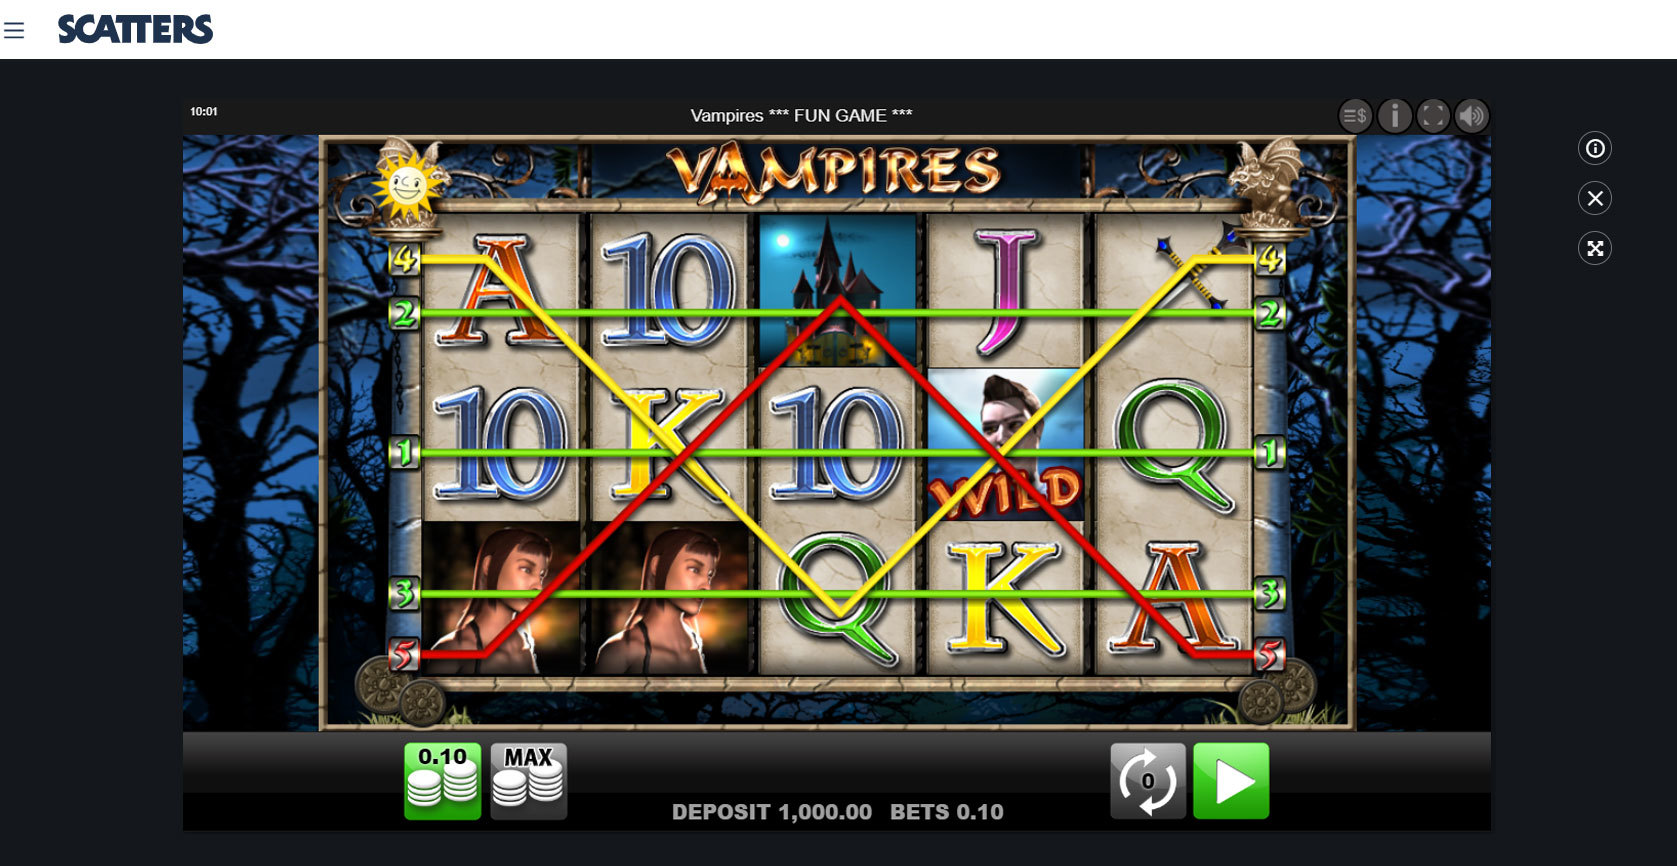 Play Vampires Slot by Merkur Free or Real Money at Scatters Casino